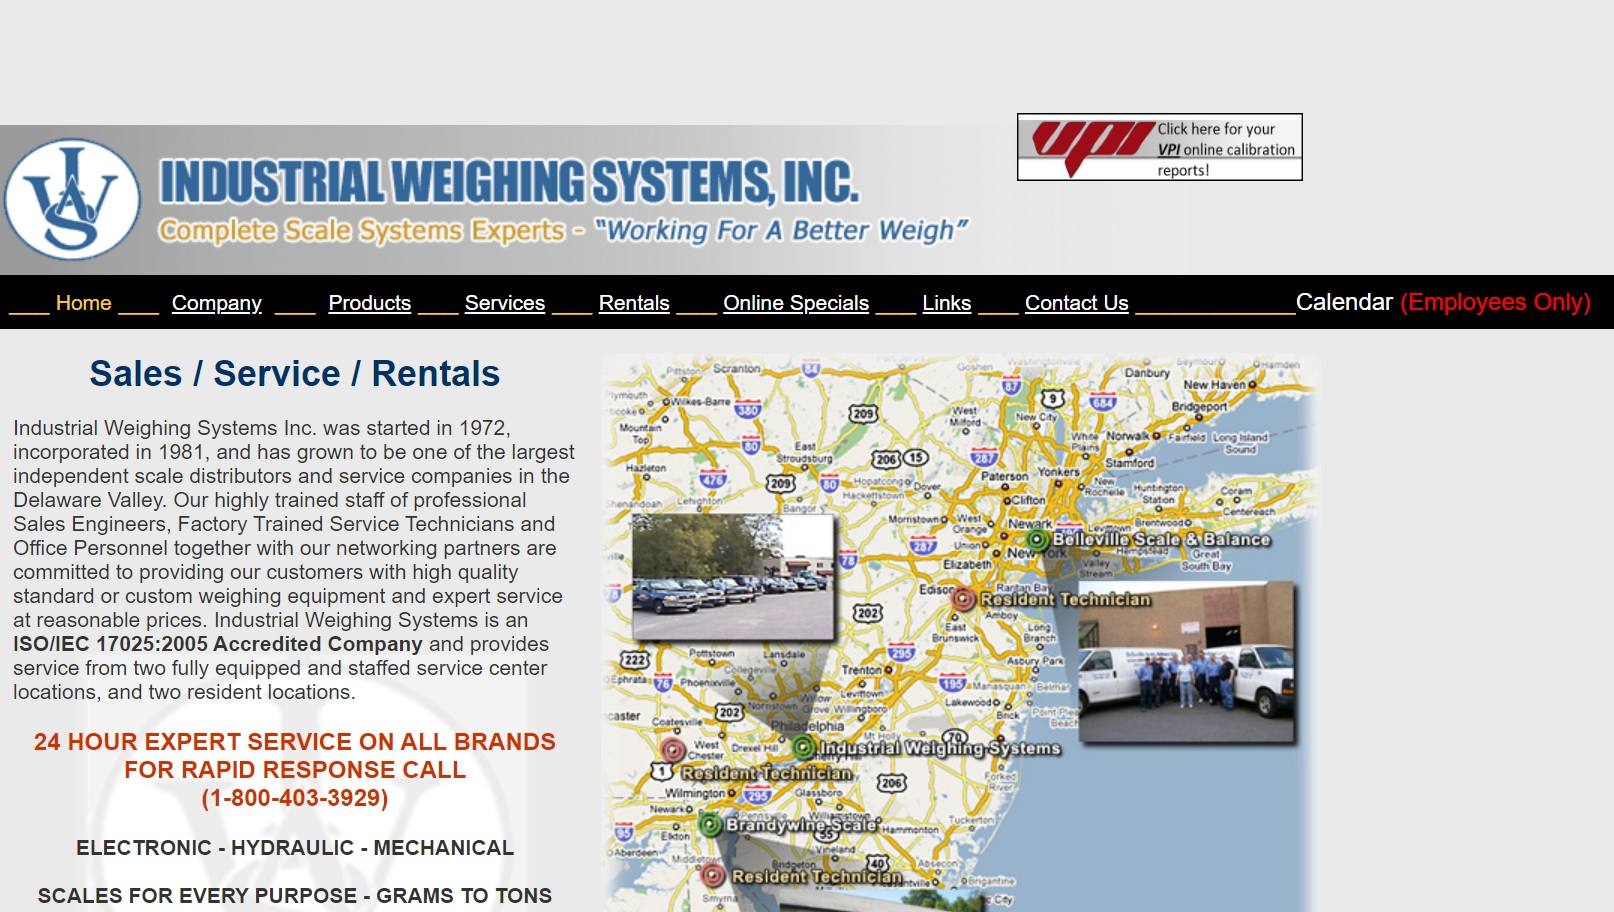 Industrial Weighing Systems Inc